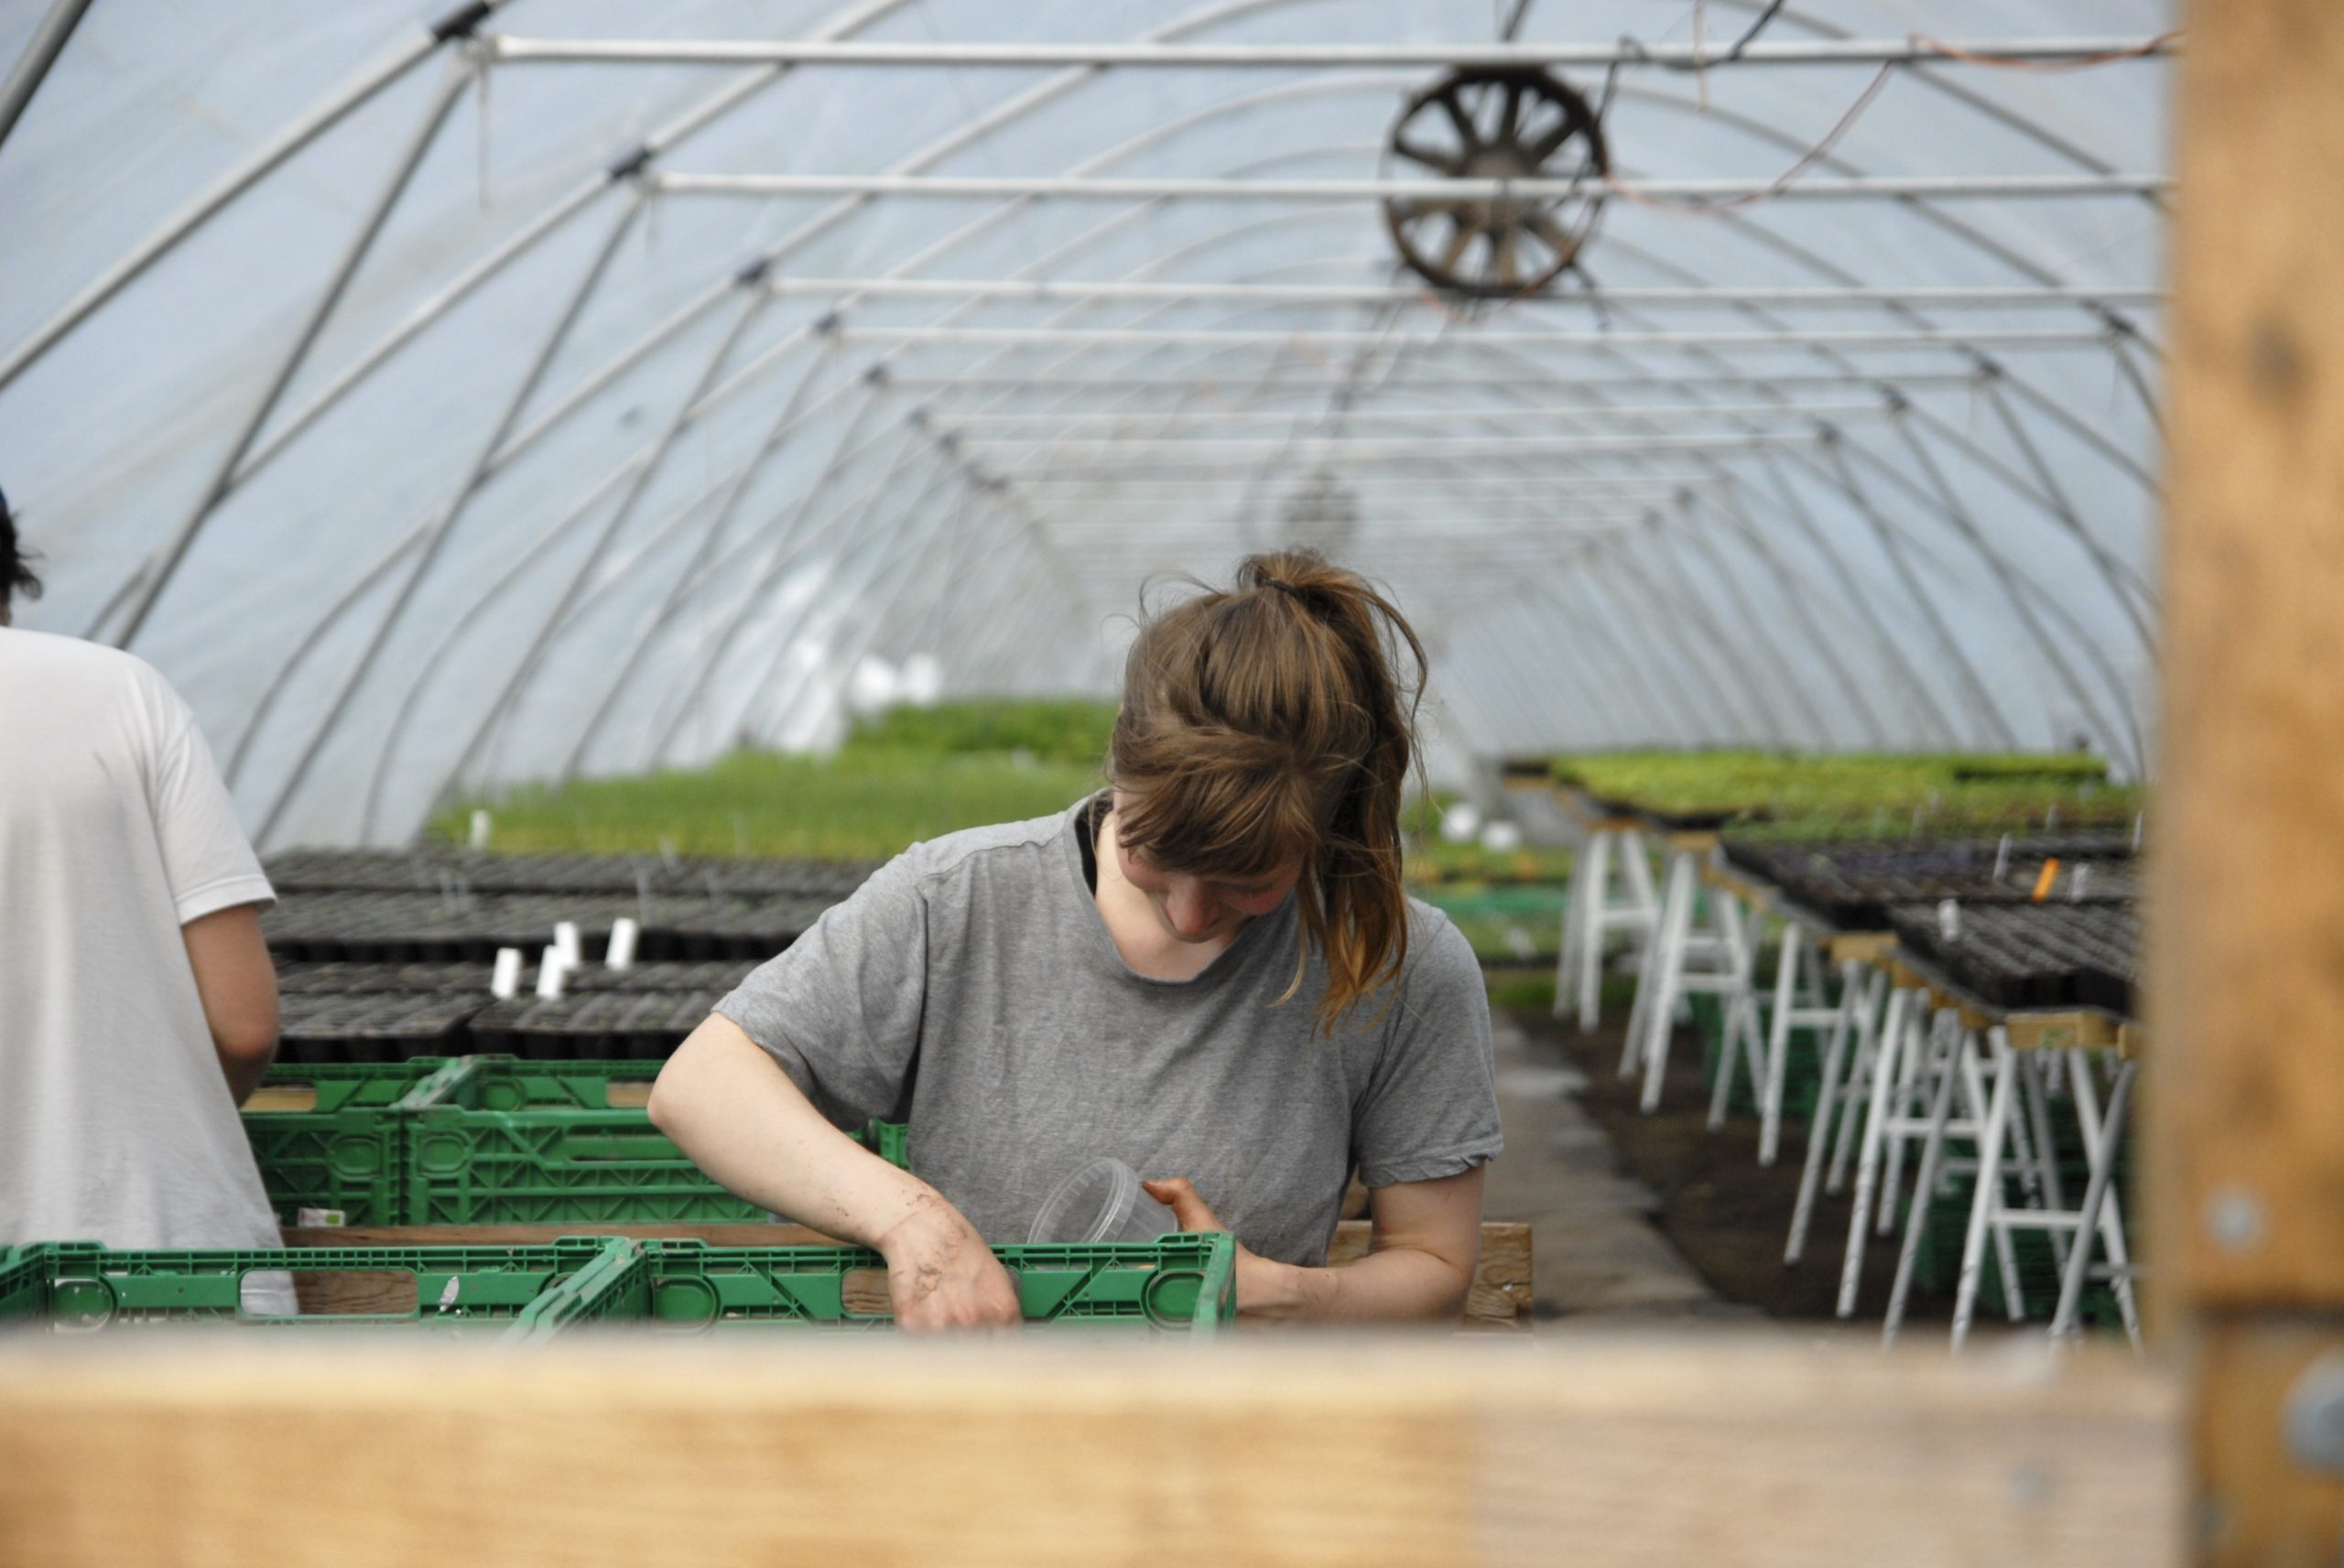 Preserving Seeds at Farm of Ideas